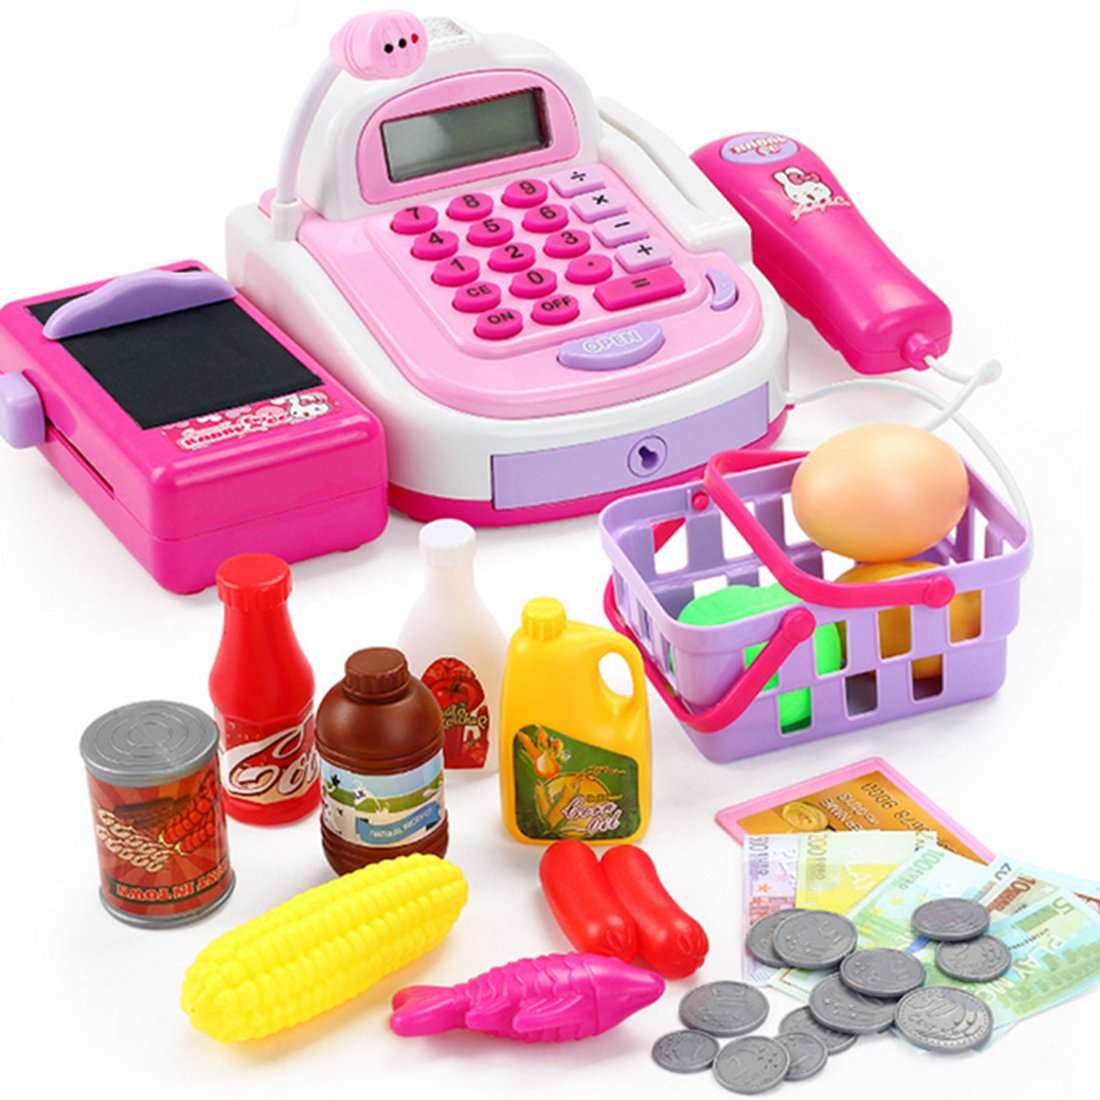 fcoson Pretend Play Supermarket Cash Registerおもちゃセットwith Calculator Checkoutスキャナand Play Food Money for kids toddlers   B0768CGJP7